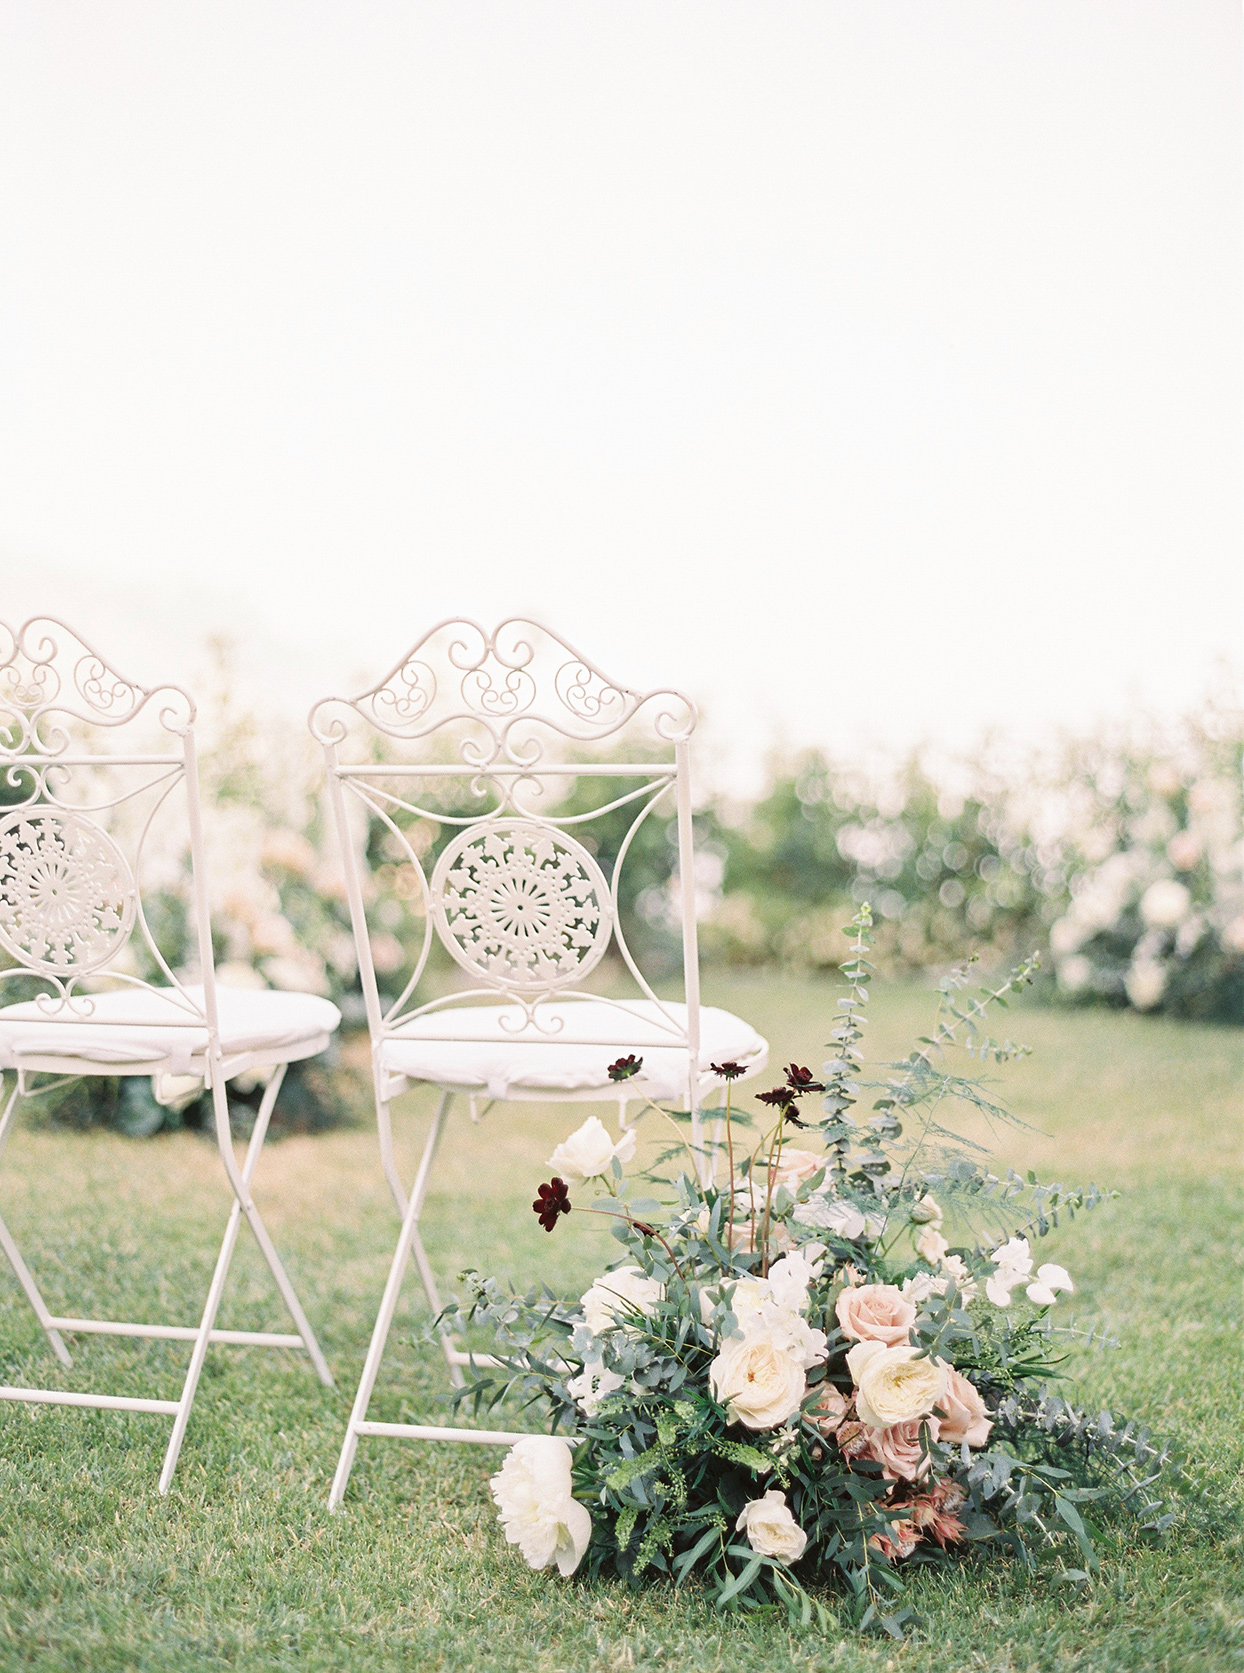 krystyna alexander wedding white ceremony chairs and flowers